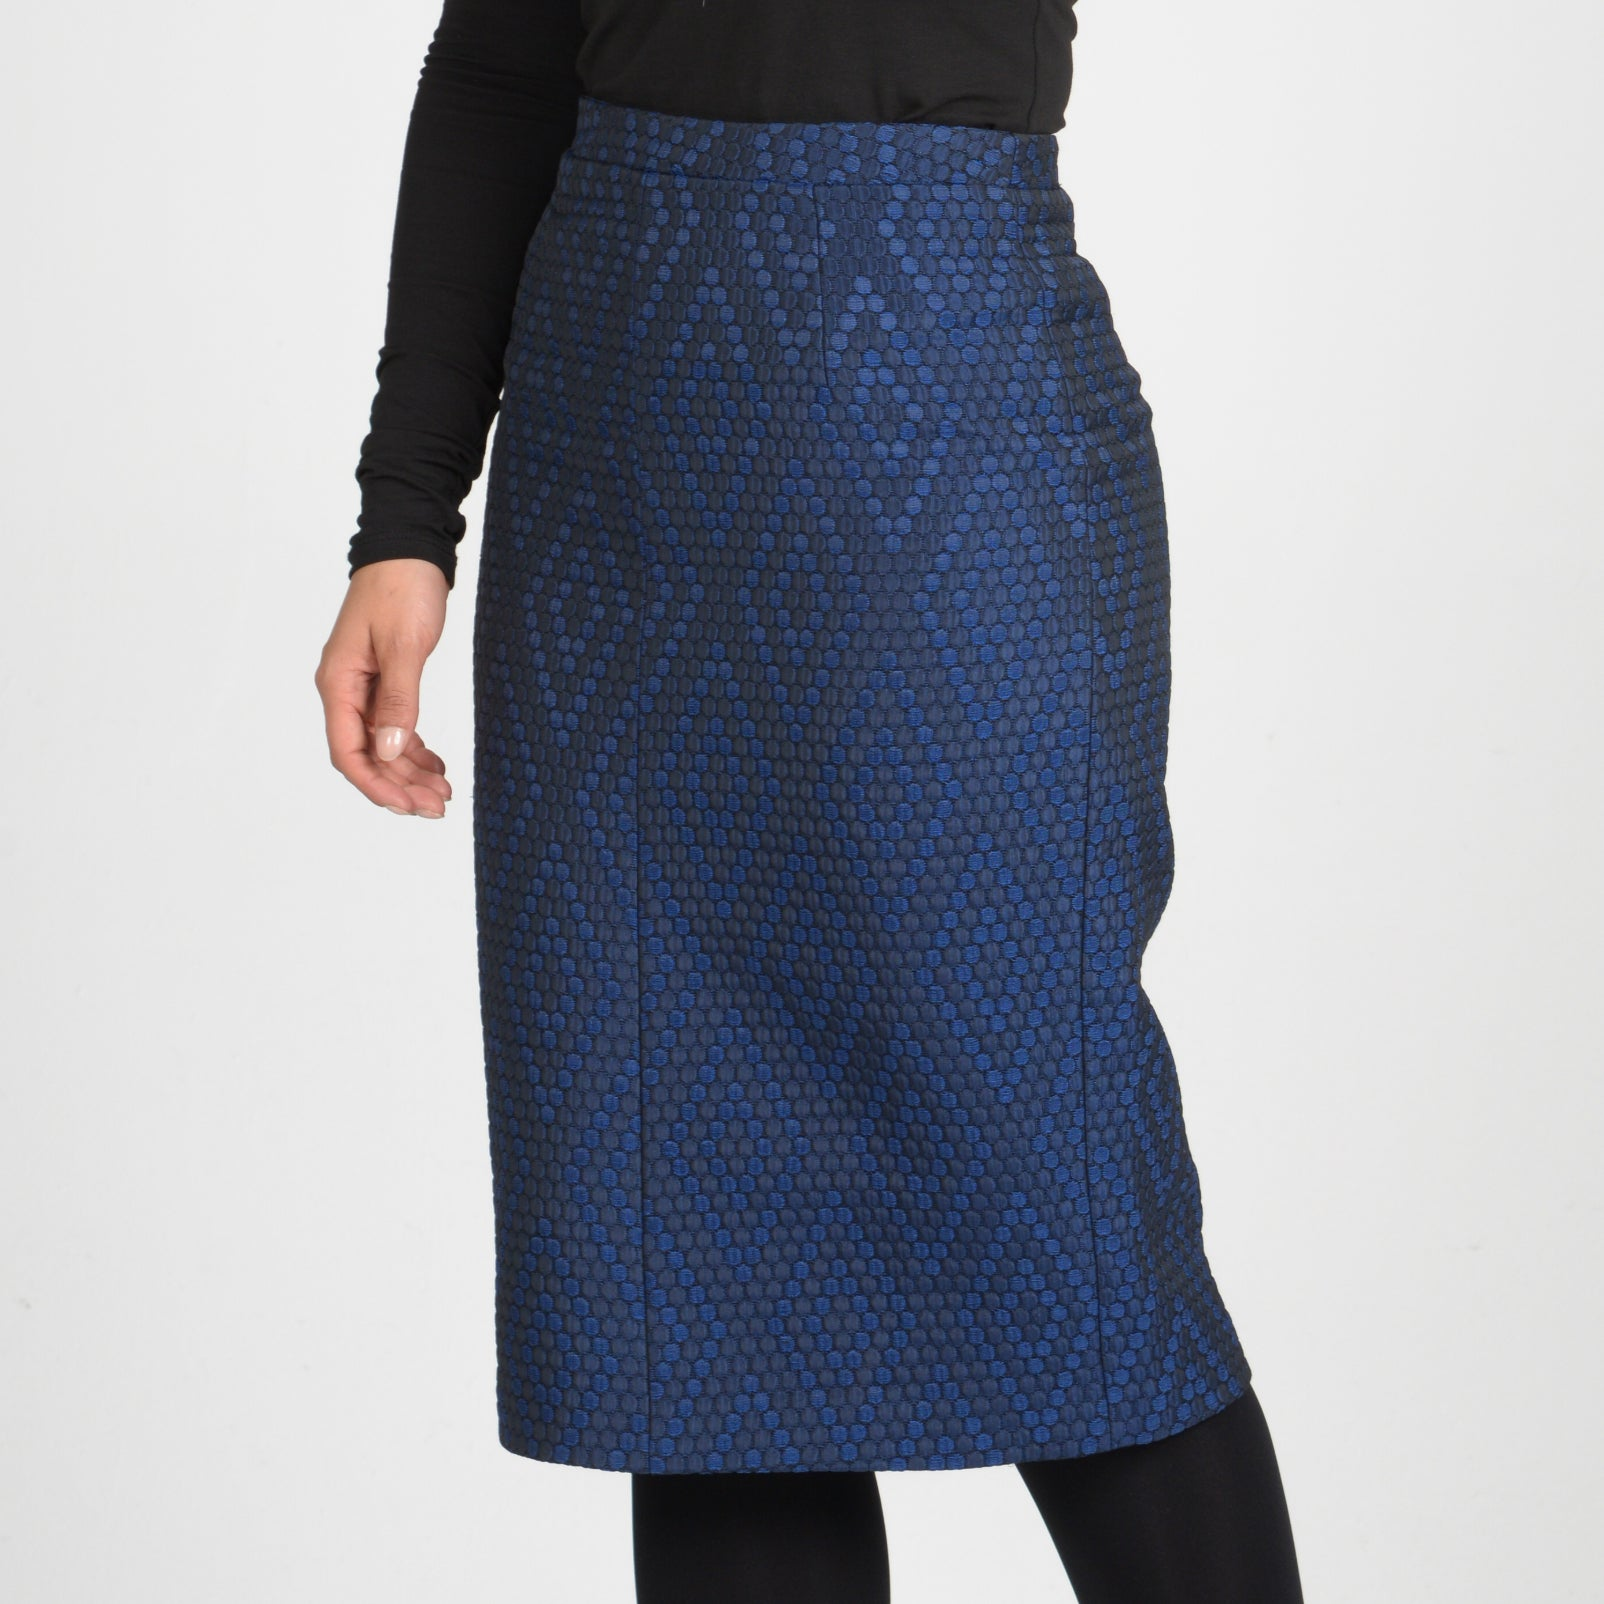 Womens BGDK quilted navy skirt knee length dotted pattern